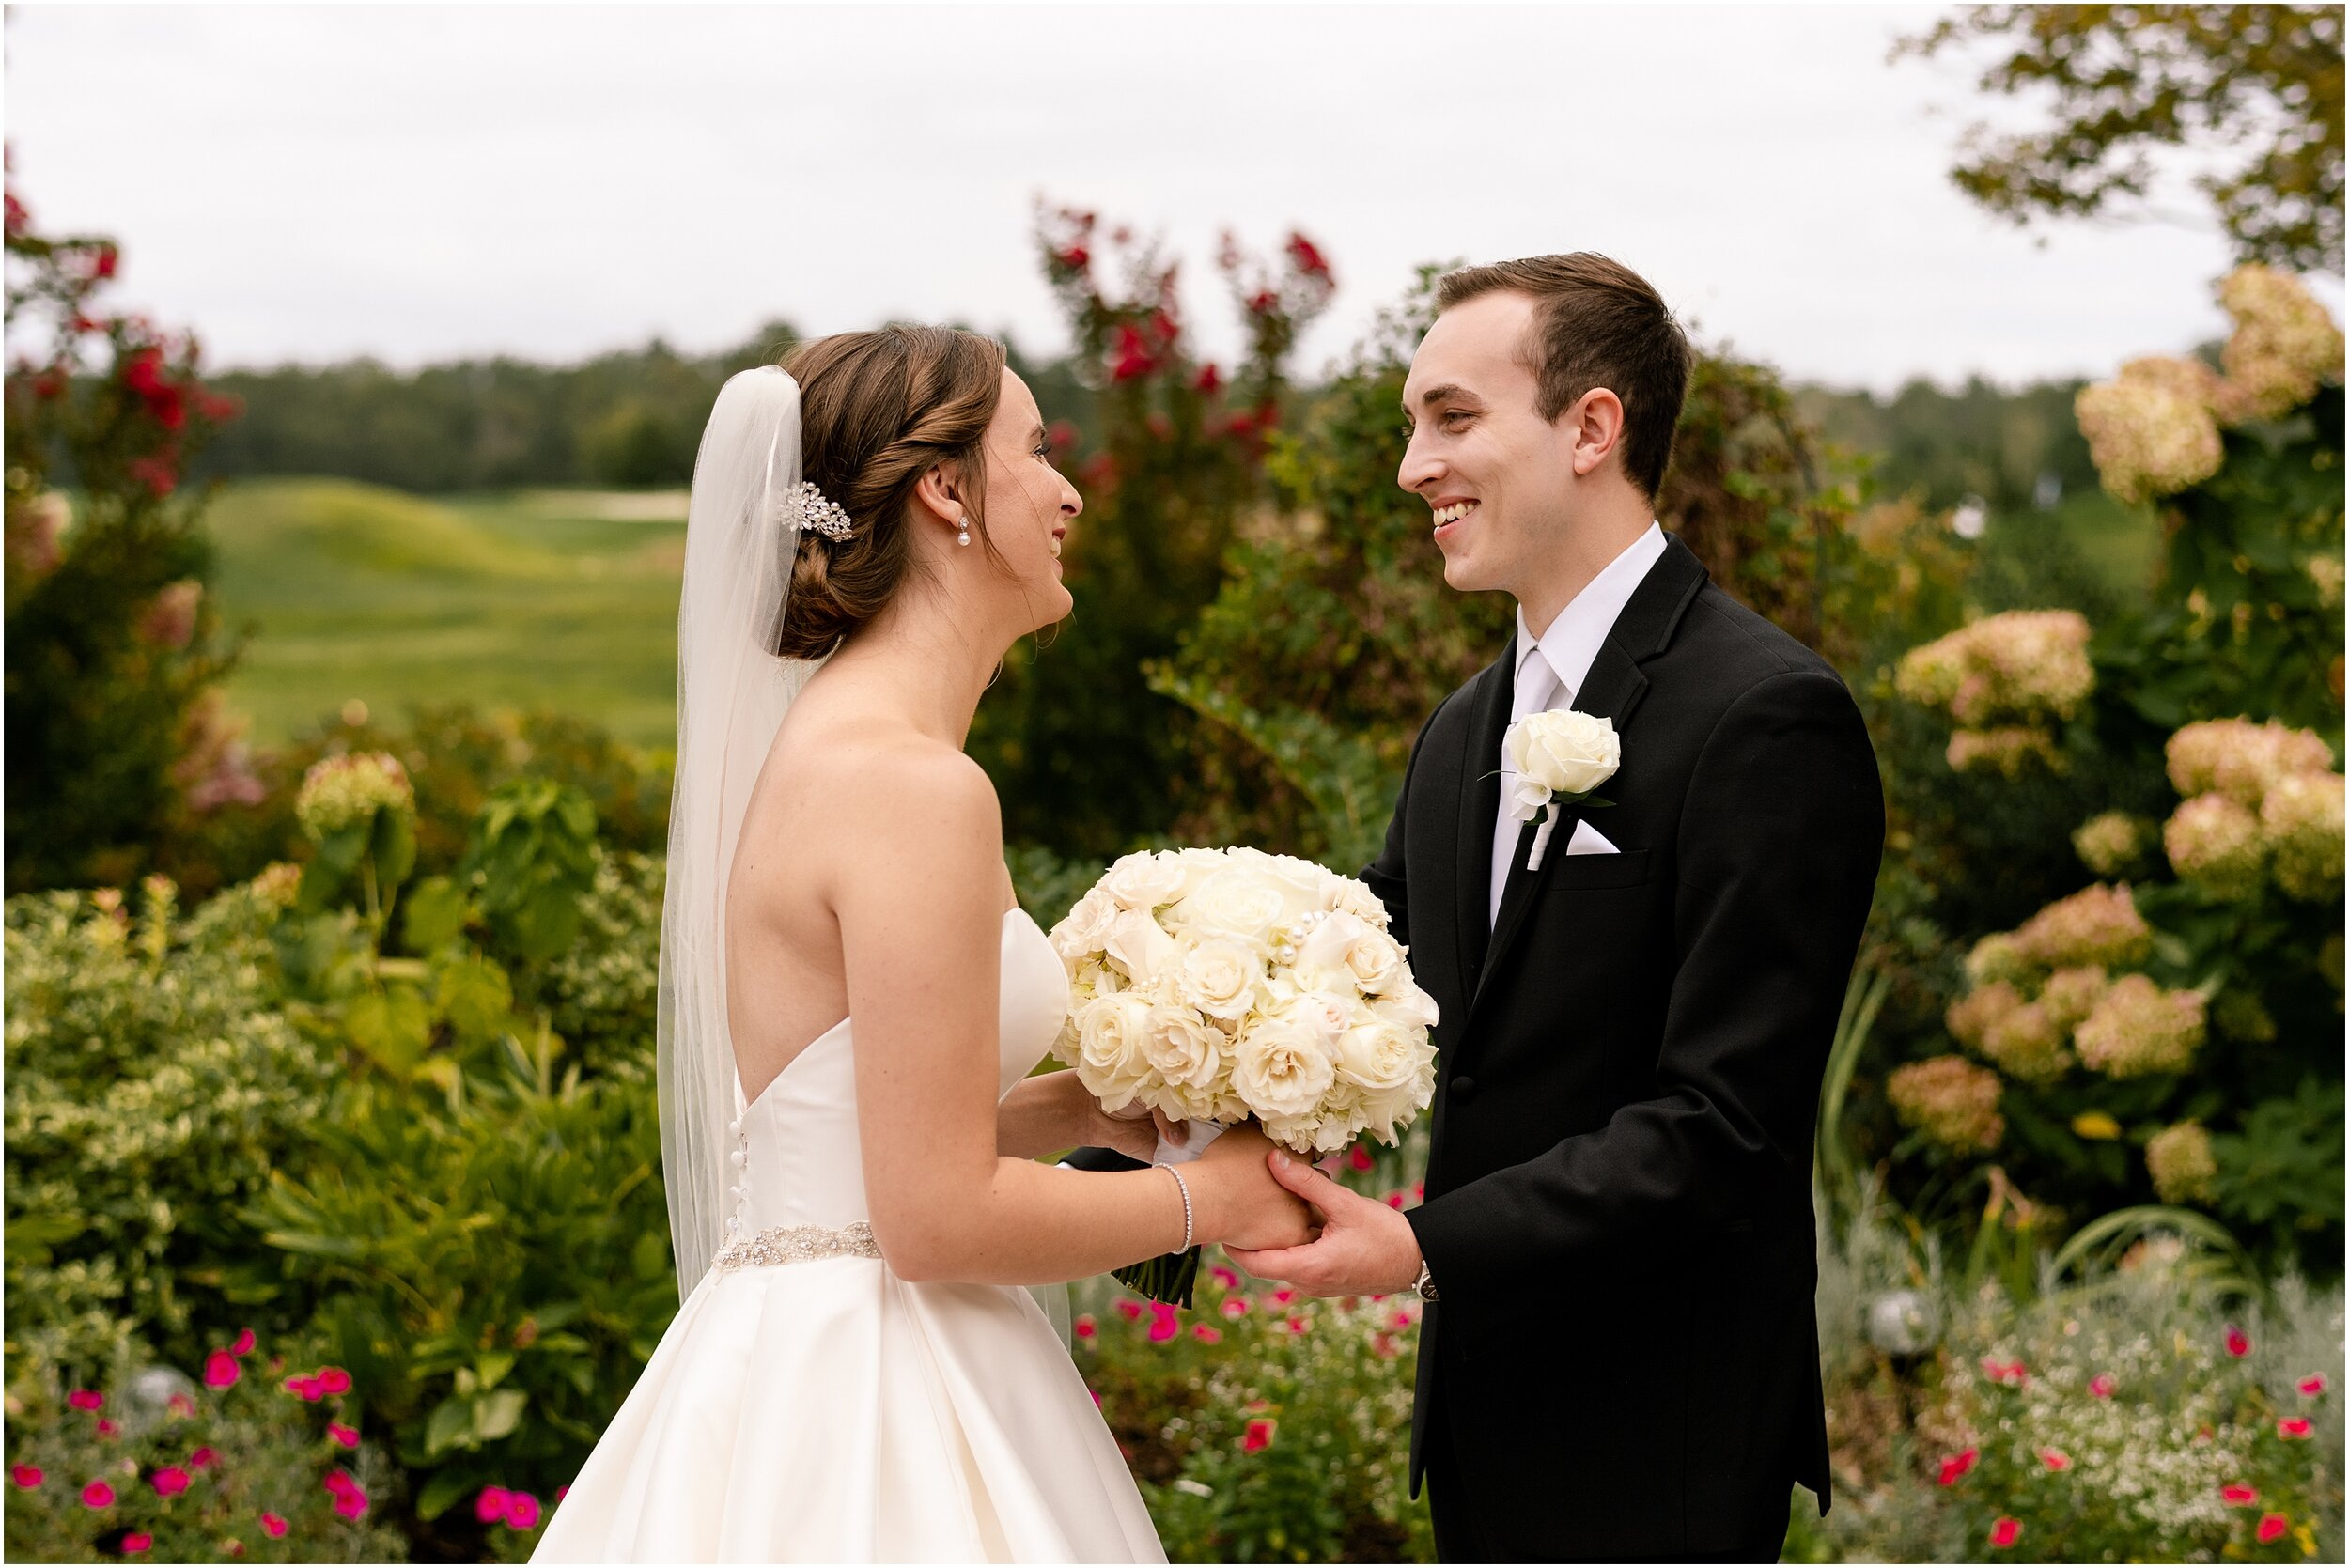 hannah leigh photography Pond View Farm Wedding White Hall MD_3741.jpg